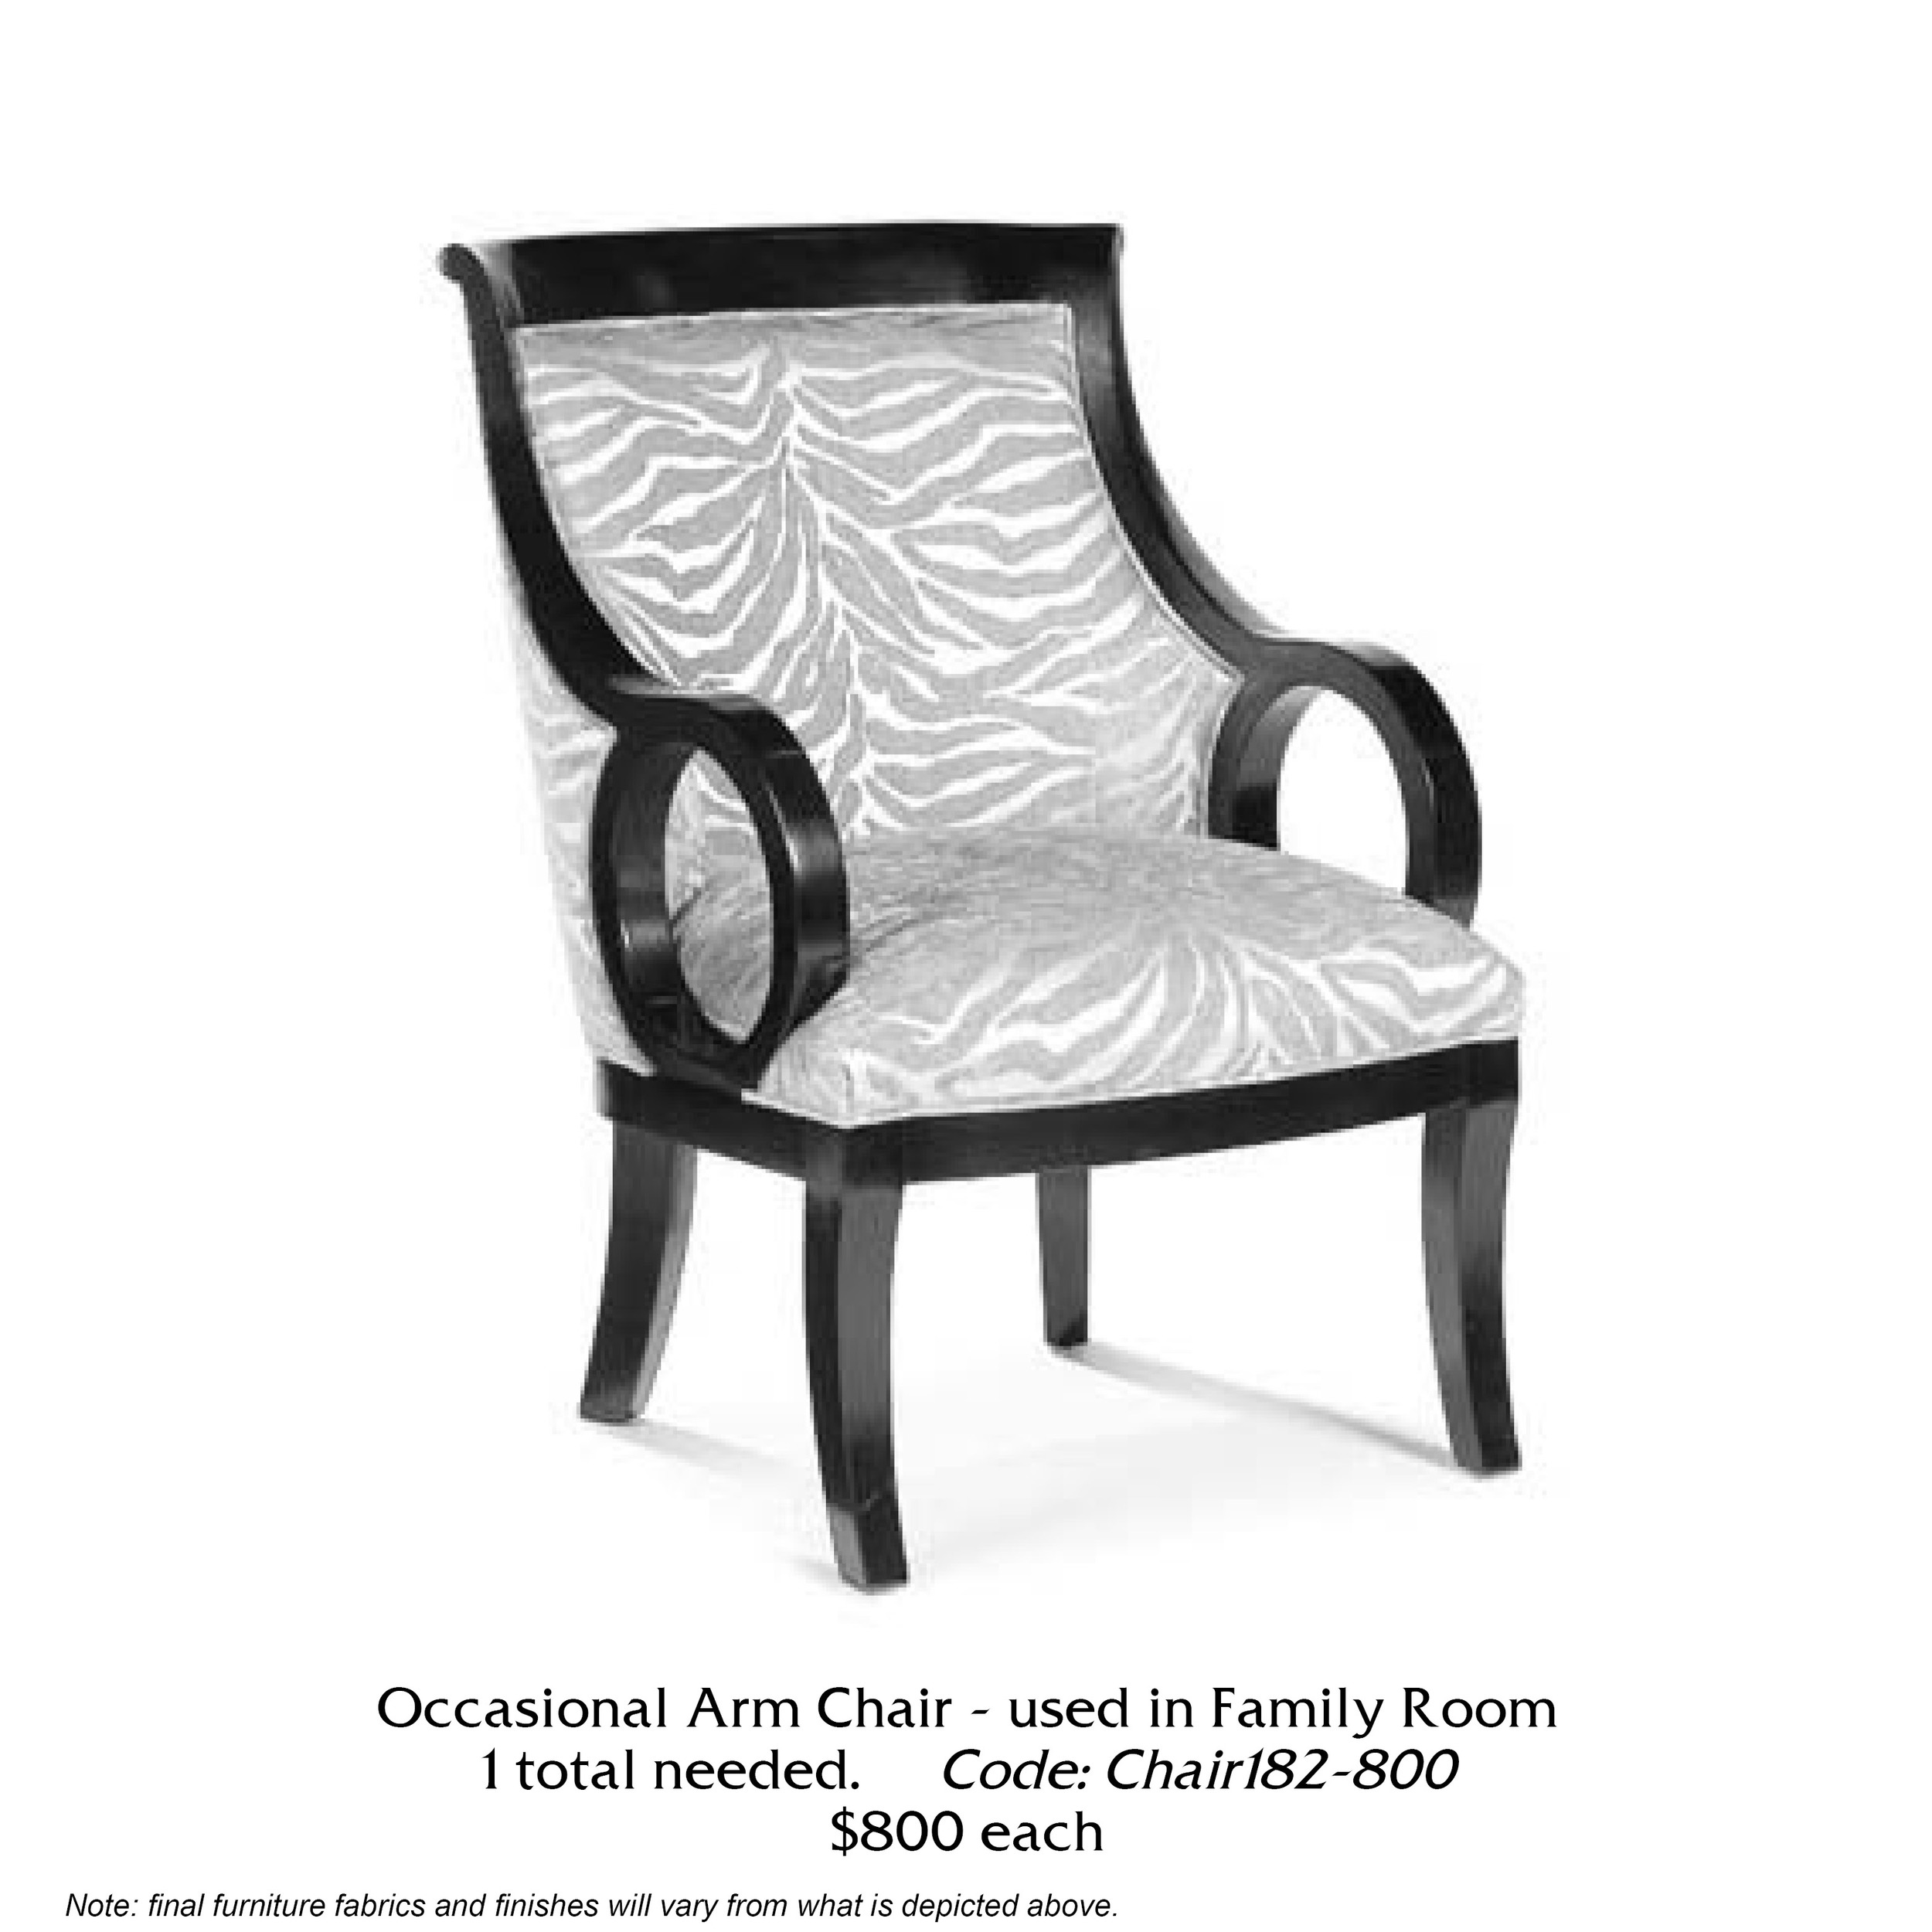 D112-F182-Occasional Arm Chair - 1.jpg